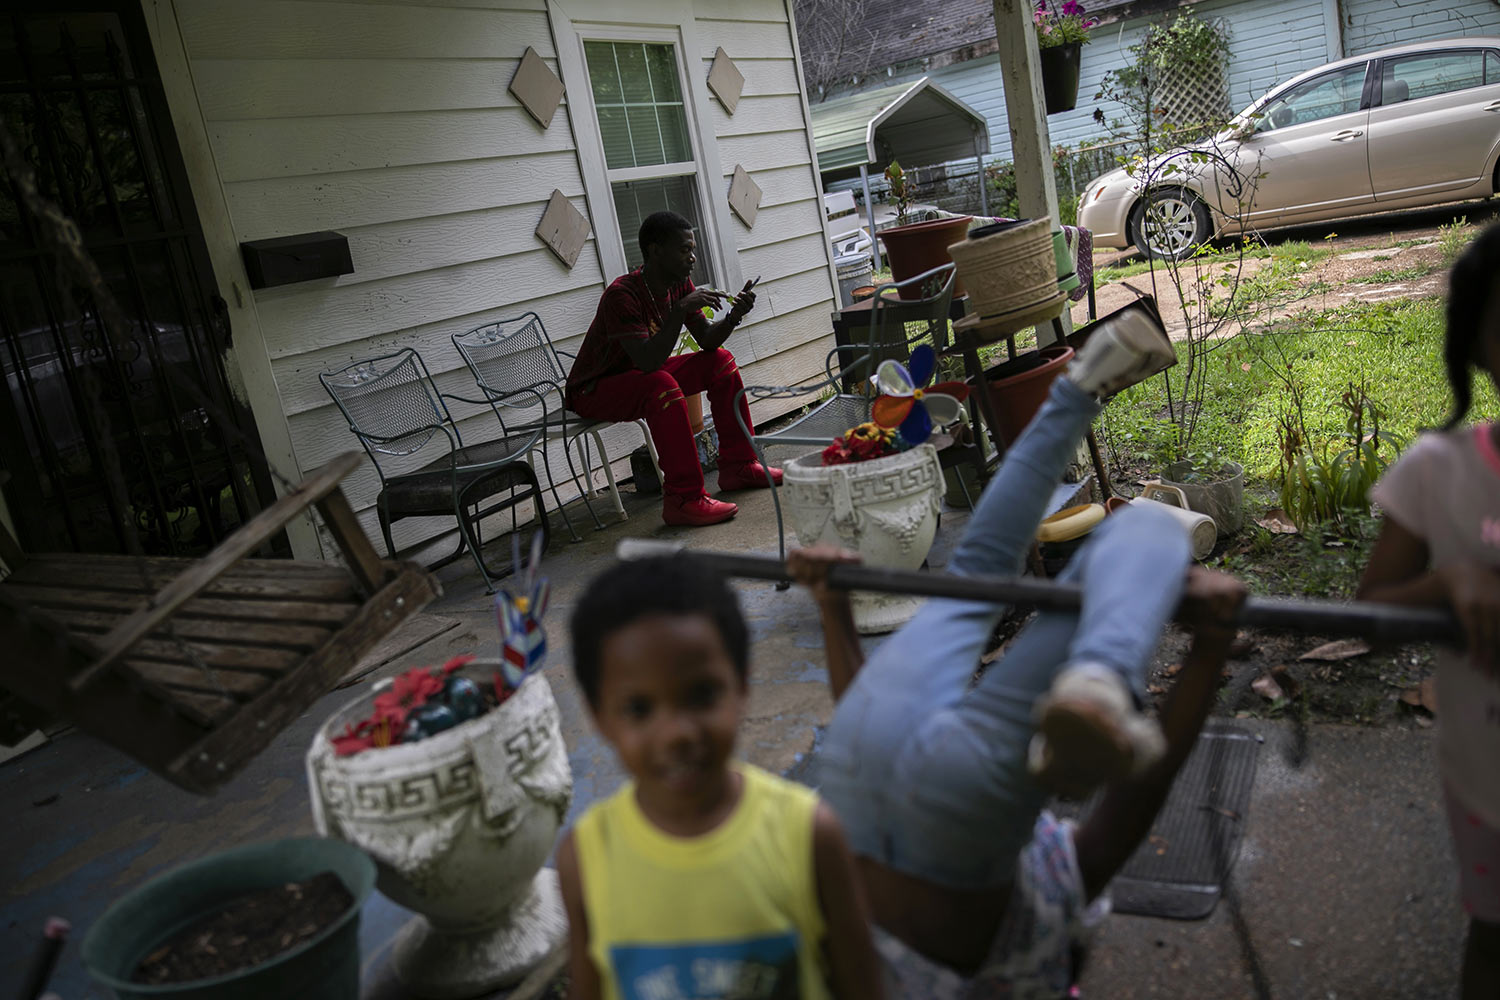 Joshua K. Love relaxes with his nieces and nephews on the front porch of his grandmother's home in Greenwood, Miss., Saturday, June 8, 2019. (AP Photo/Wong Maye-E)